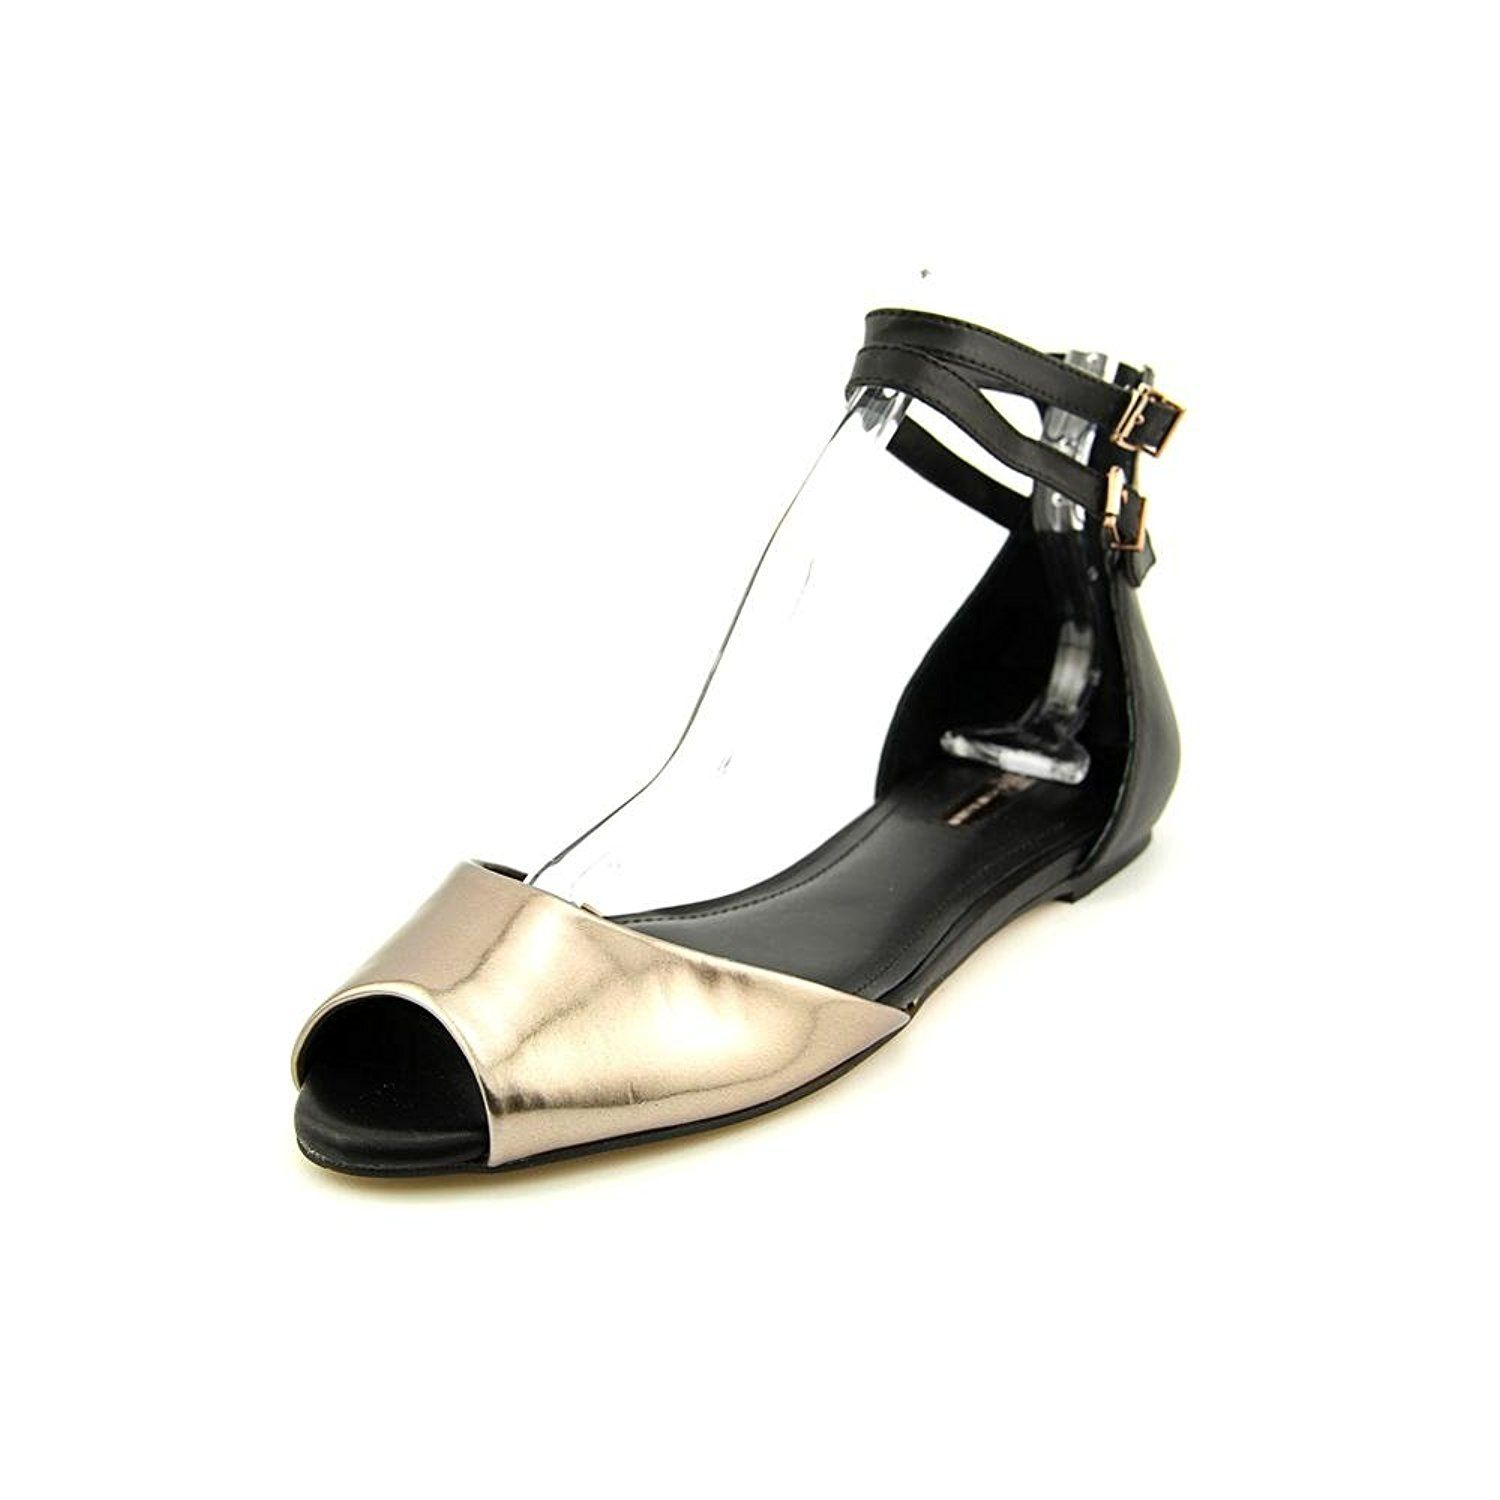 Bcbgeneration Kaelen Womens Size 10 Black Dress Sandals Shoes You Can Find Out More Details At The Link Of Th Black Dress Sandals Womens Sandals Flat Sandals [ 1500 x 1500 Pixel ]